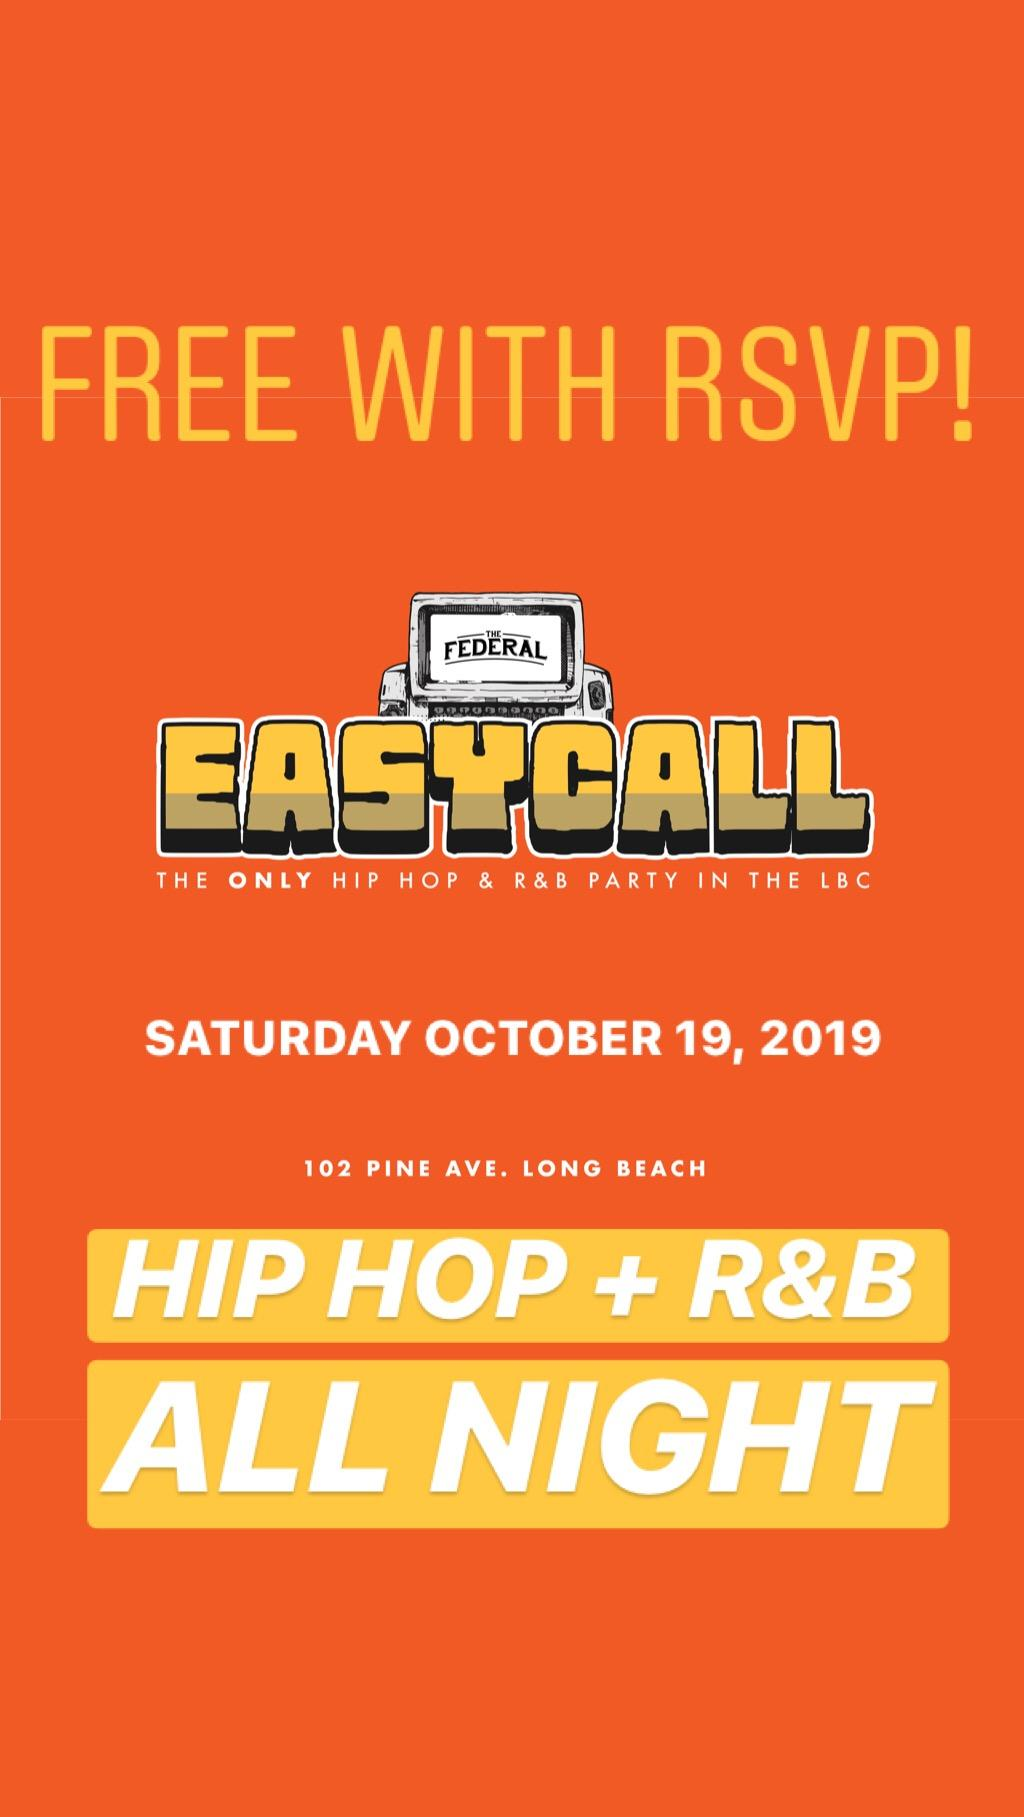 Saturdays EASY CALL at Federal Bar Long Beach